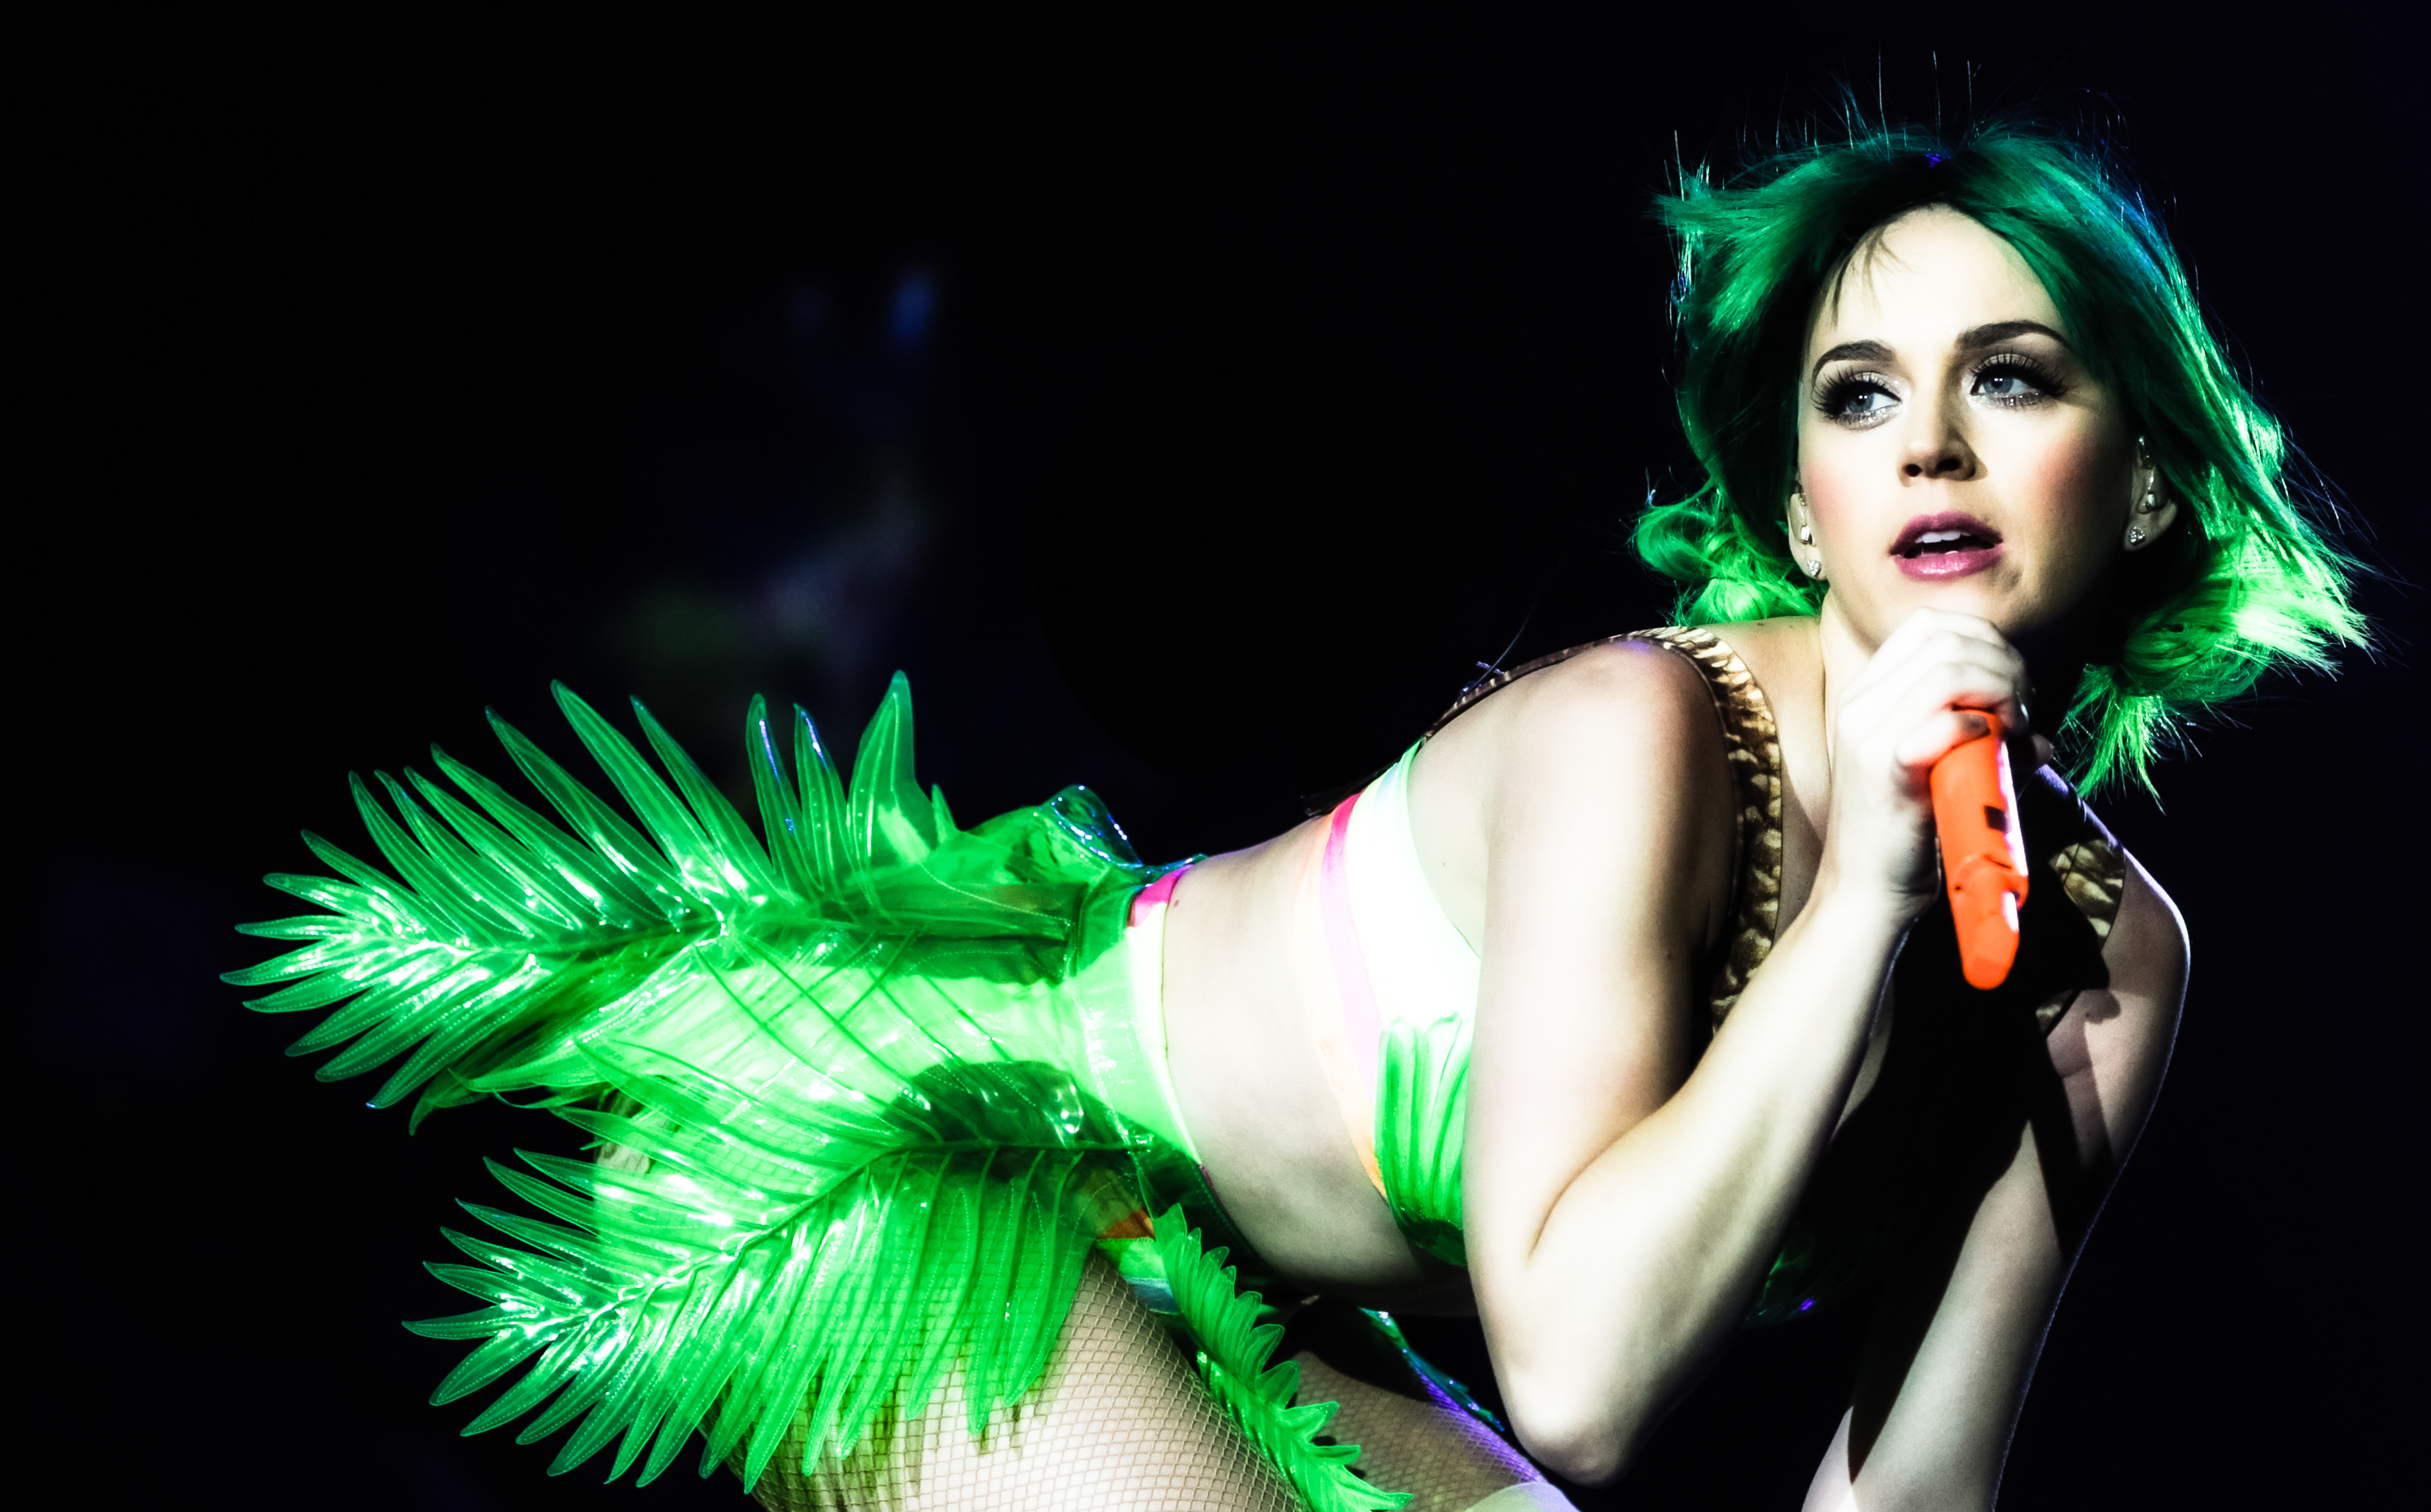 Katy Perry Performs At The Odyssey Arena, Belfast